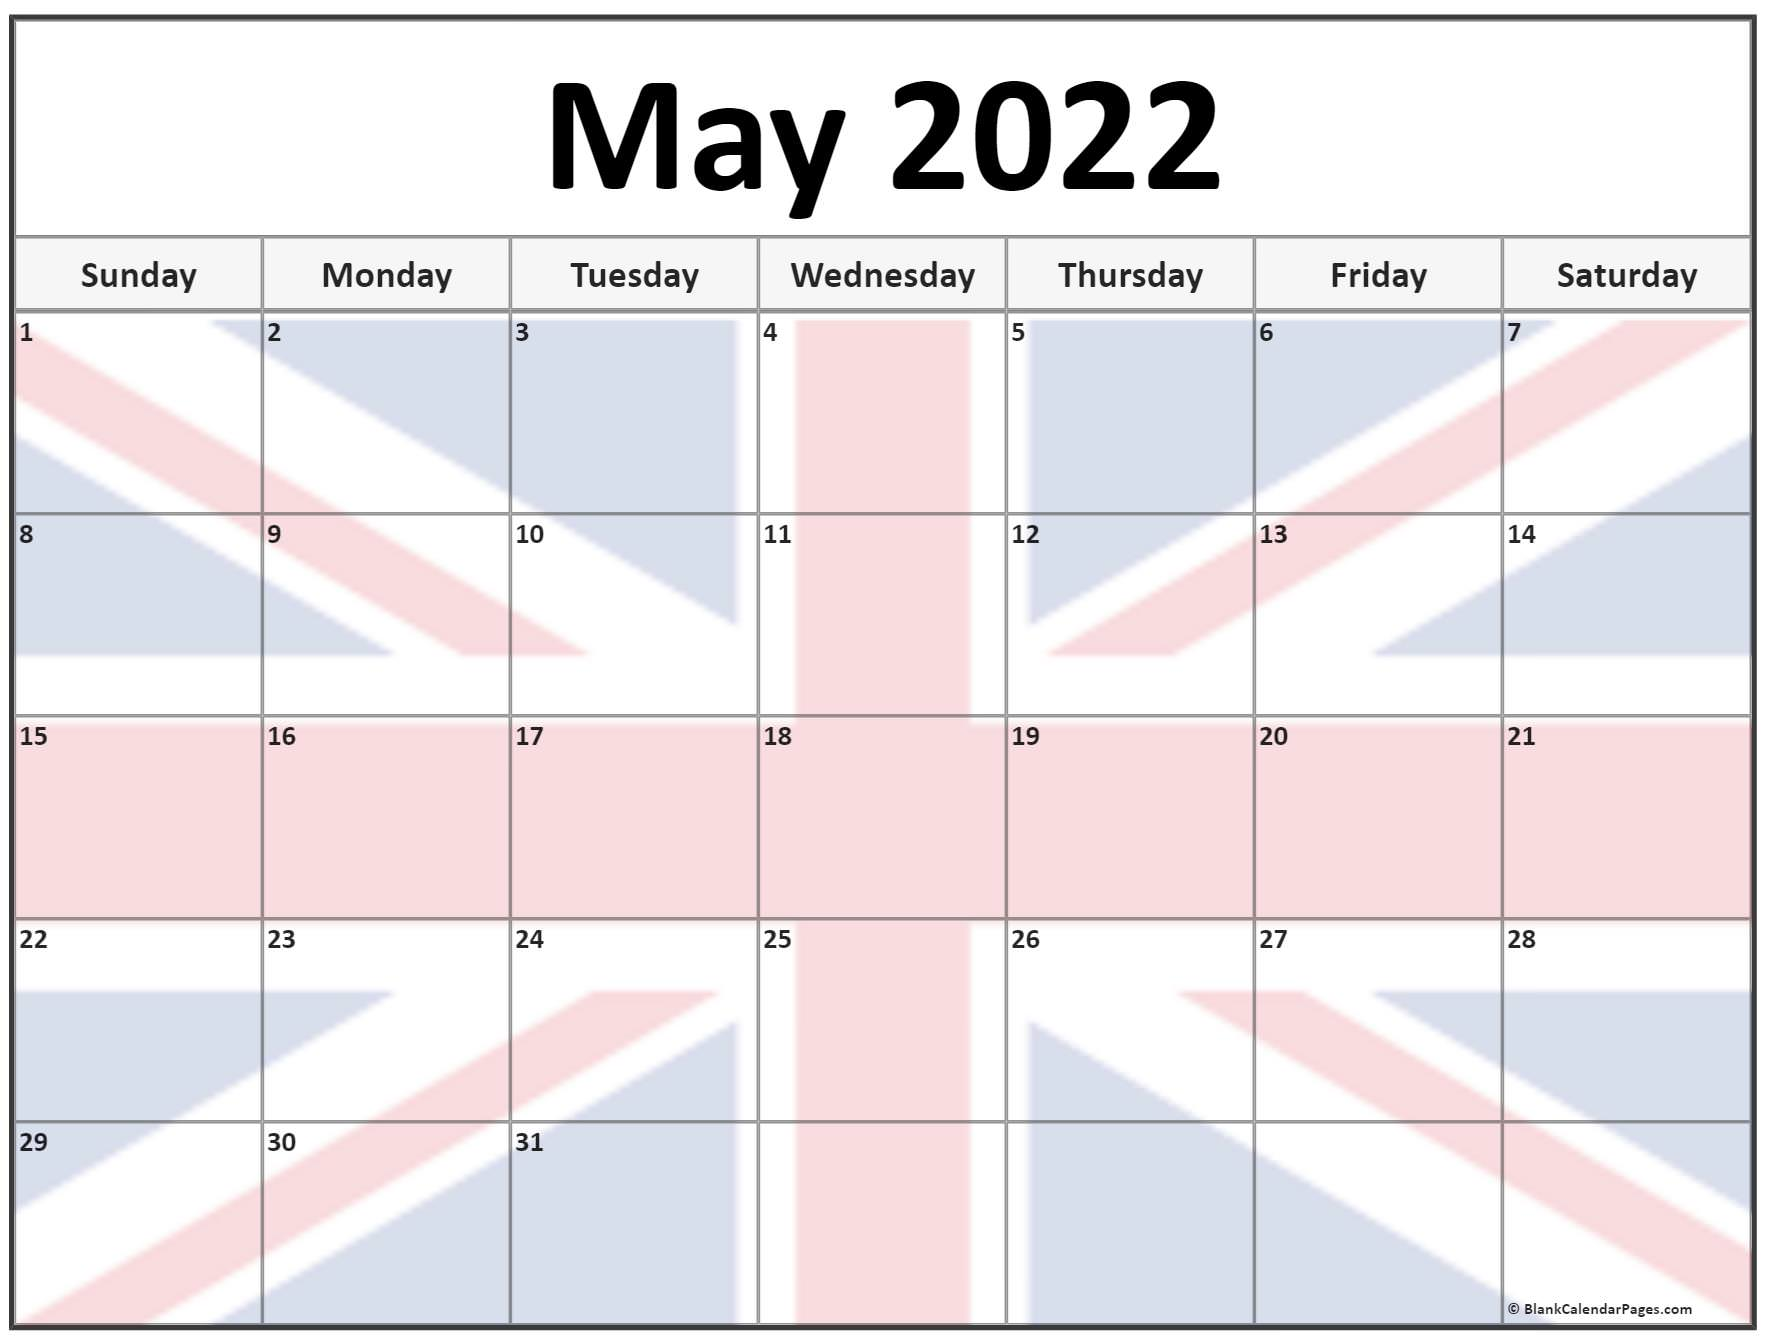 Collection of May 2022 photo calendars with image filters.